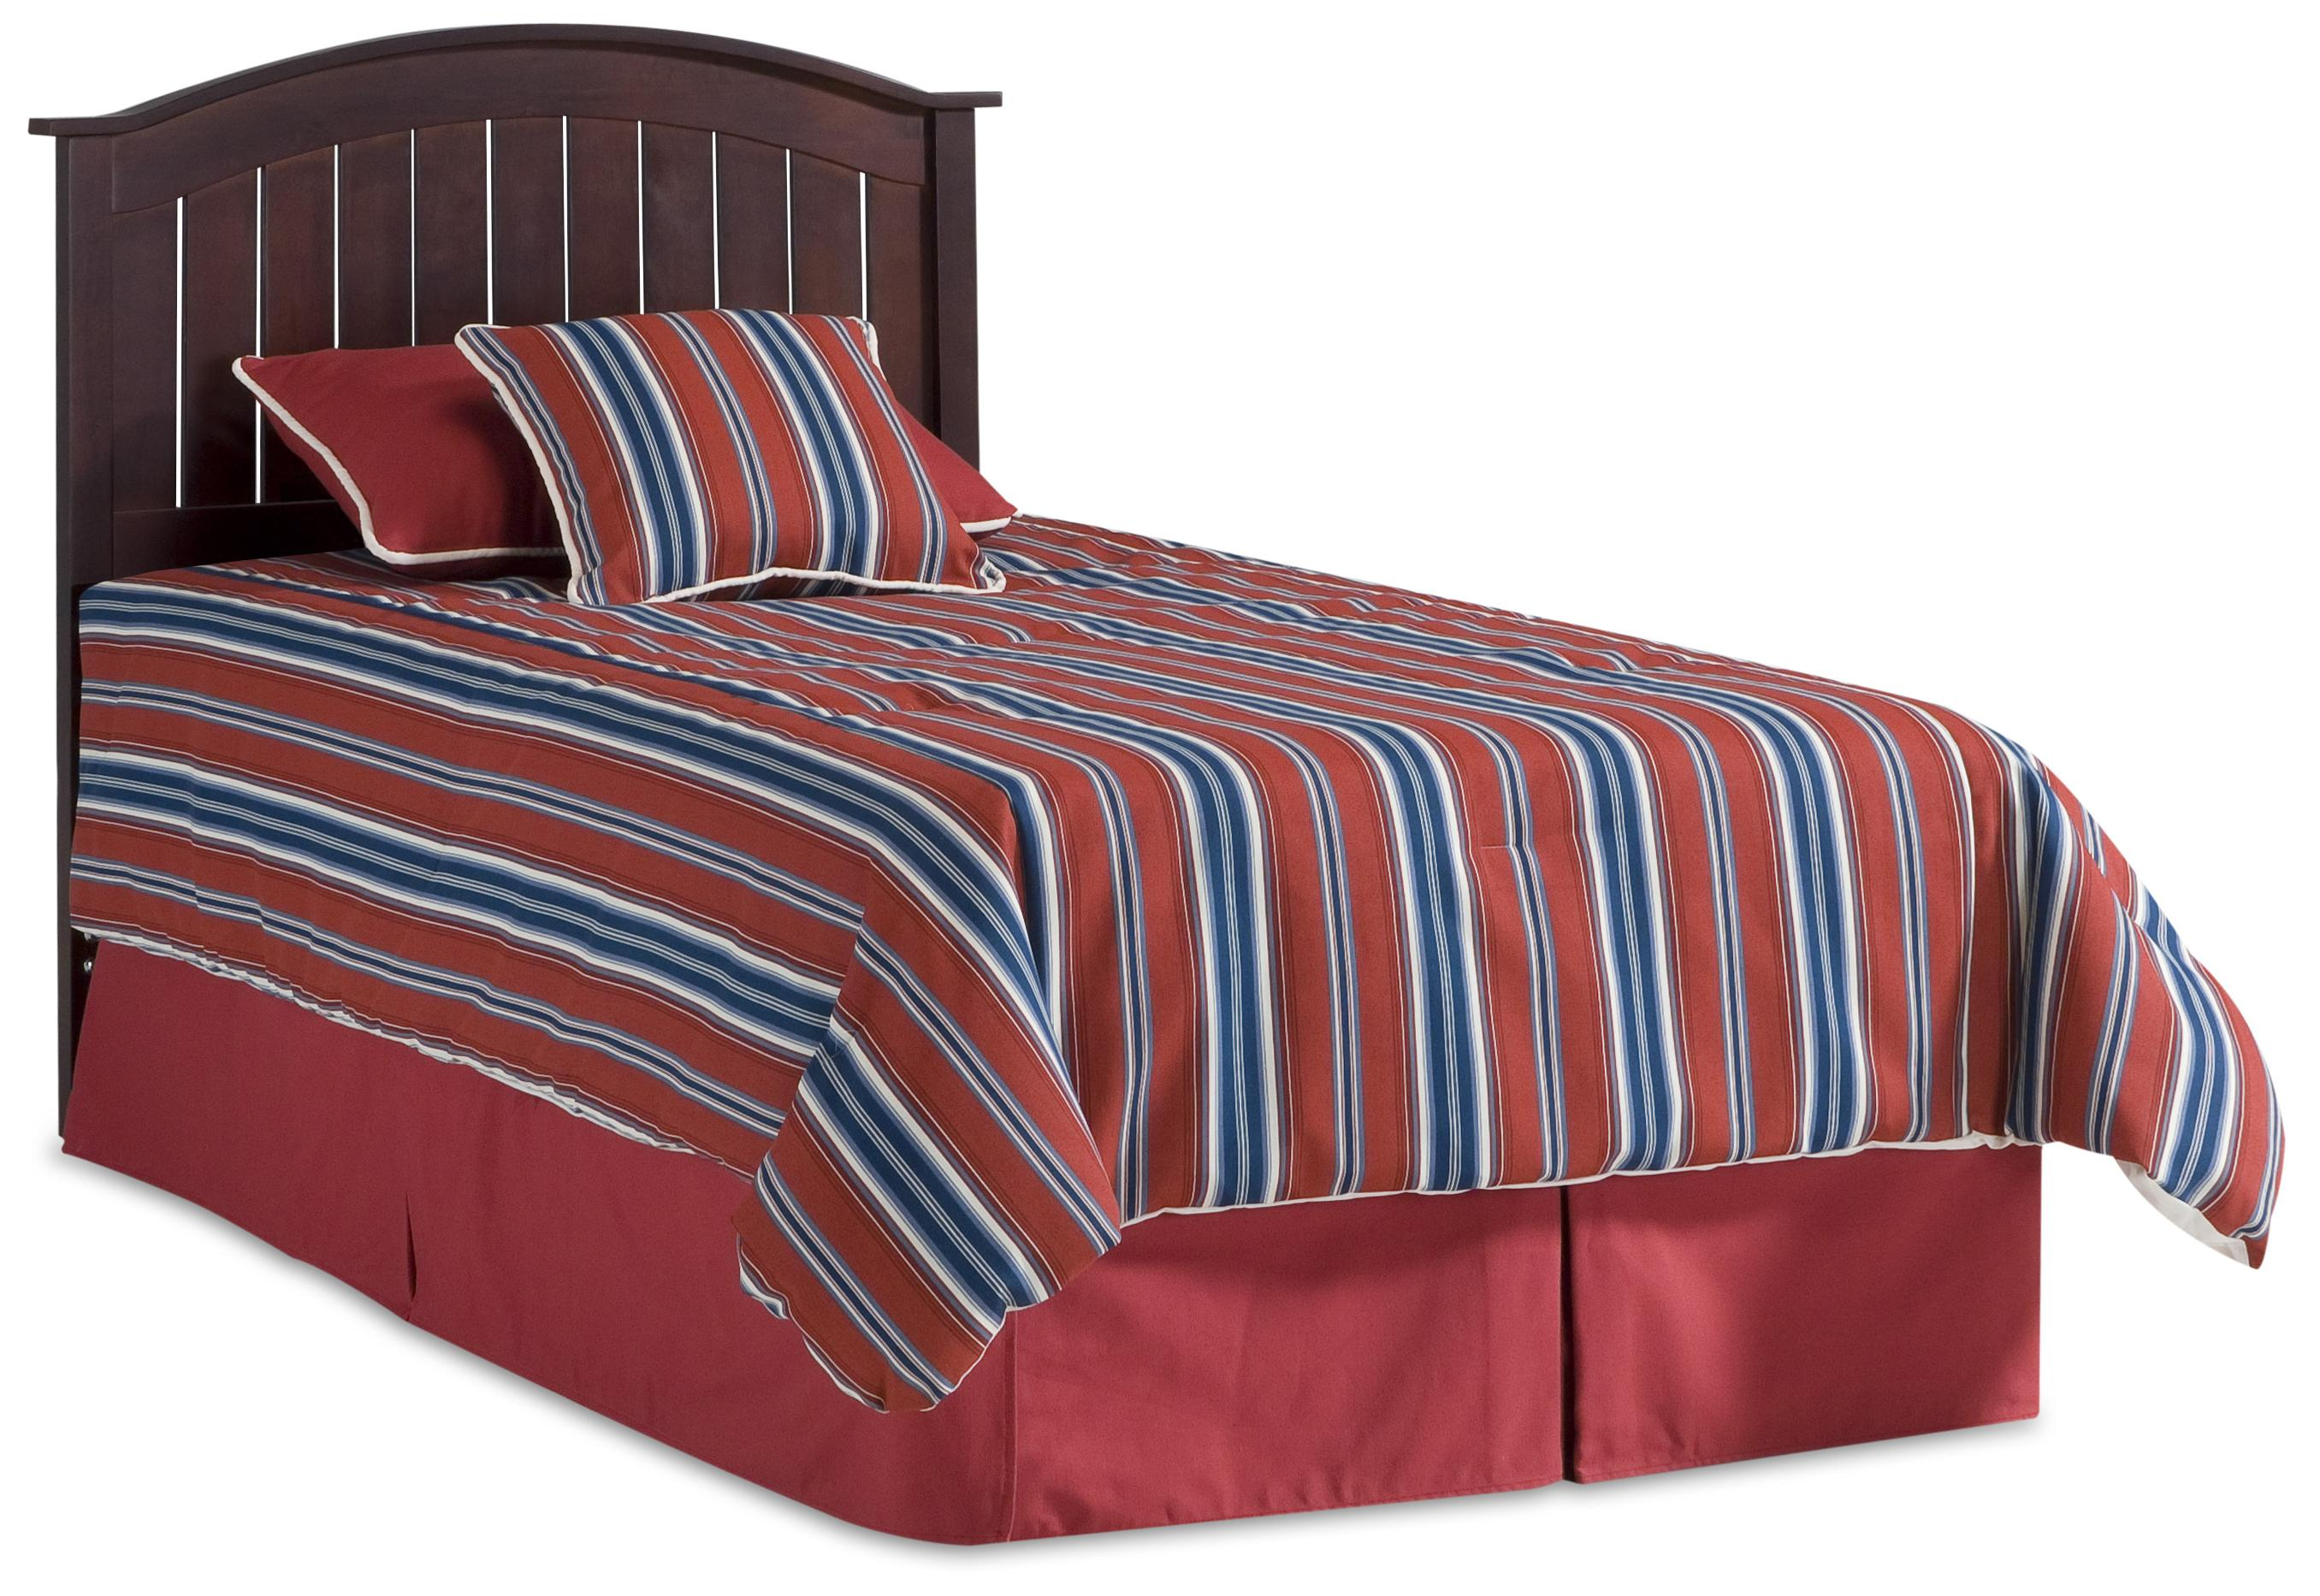 Fashion Bed Group Fashion Kids Twin Finley Headboard - Item Number: 51T543